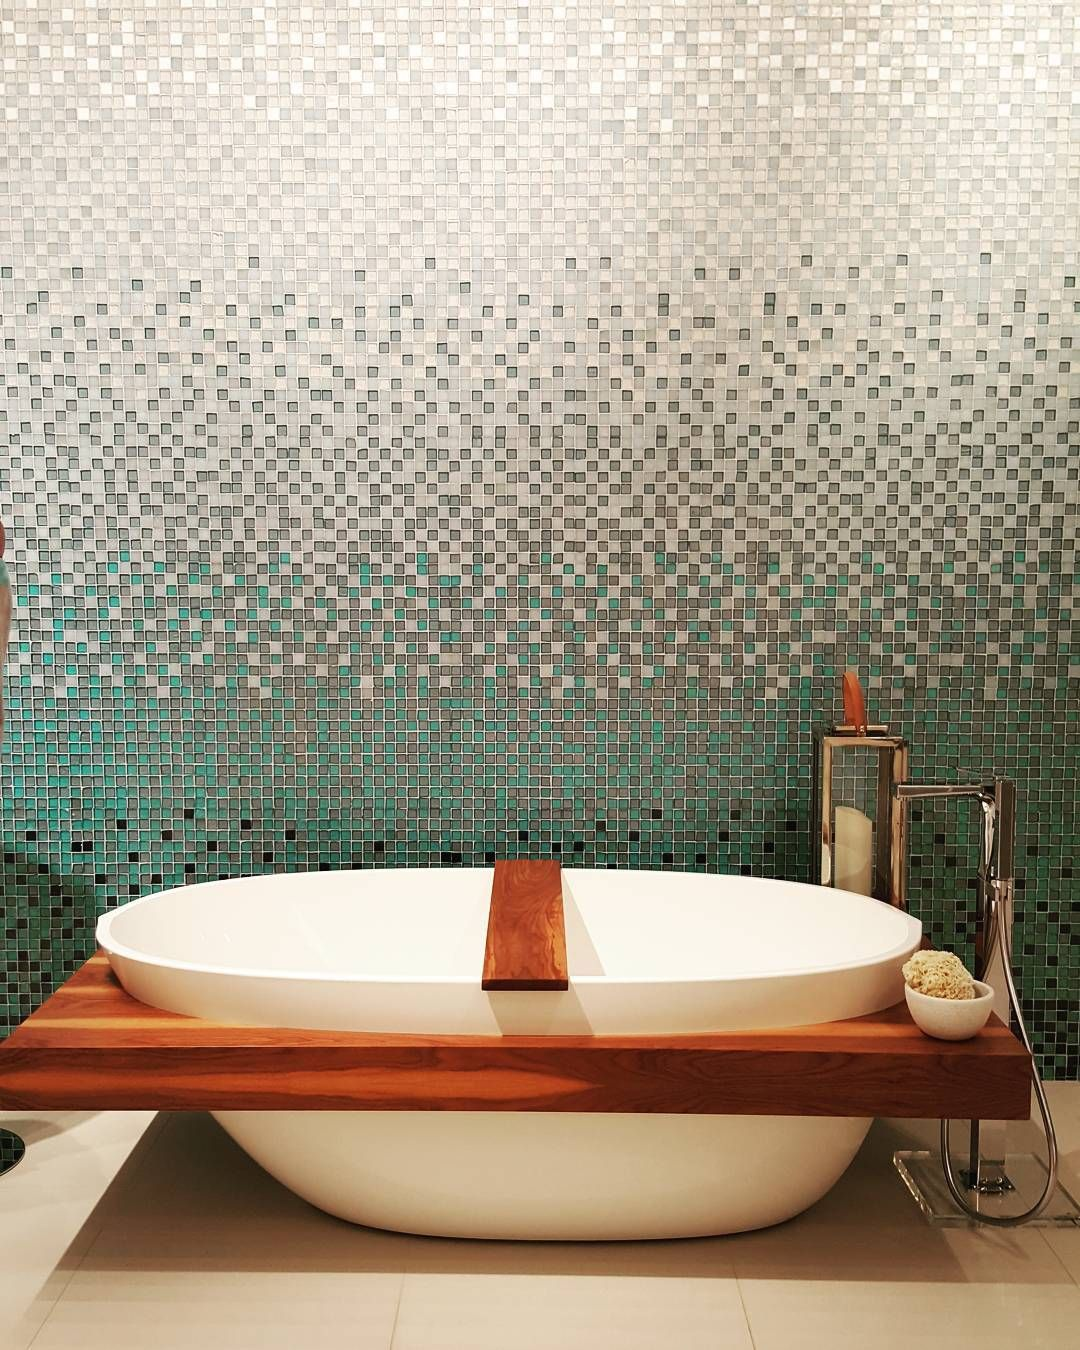 Gorgeous blue ombre tile wall creates a stunning backdrop for the deep soaking tub! Wanted to jump in and never leave but think that would be a bit embarrassing on the @thepirch showroom floor! ;) #dbcatl @designbloggersconference #blog #blogging #bloggers #interiors #interiordesign #interiordesigner #idcdesigners #designhounds #design #home #luxury #FeiaConstruction #bathroom #tub #bath #bathtime #tile #tiledesign #blue #ombre #mosaic #gorgeous #stunning #remodel #reno by susiefeia